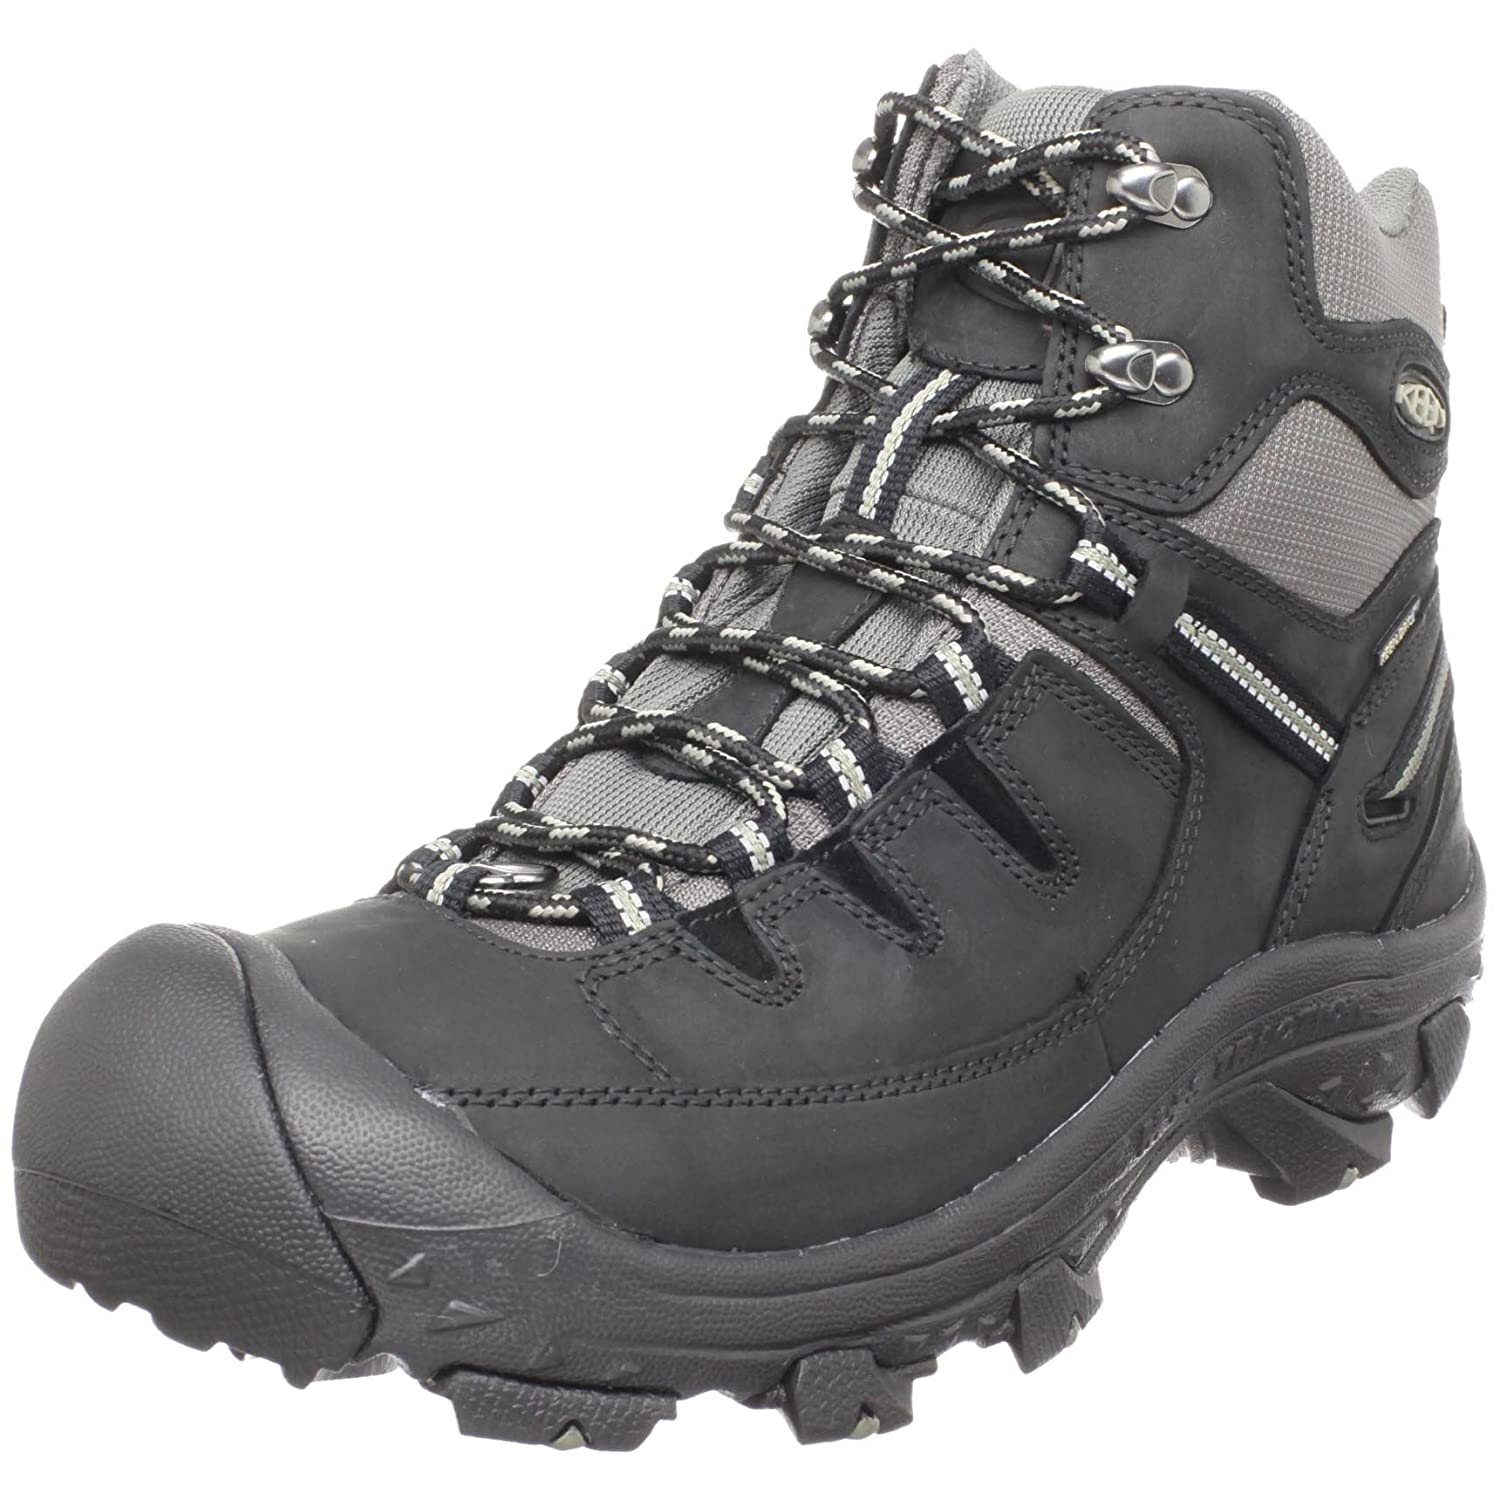 4b90e29e765 KEEN Men's Delta Hiking Boot